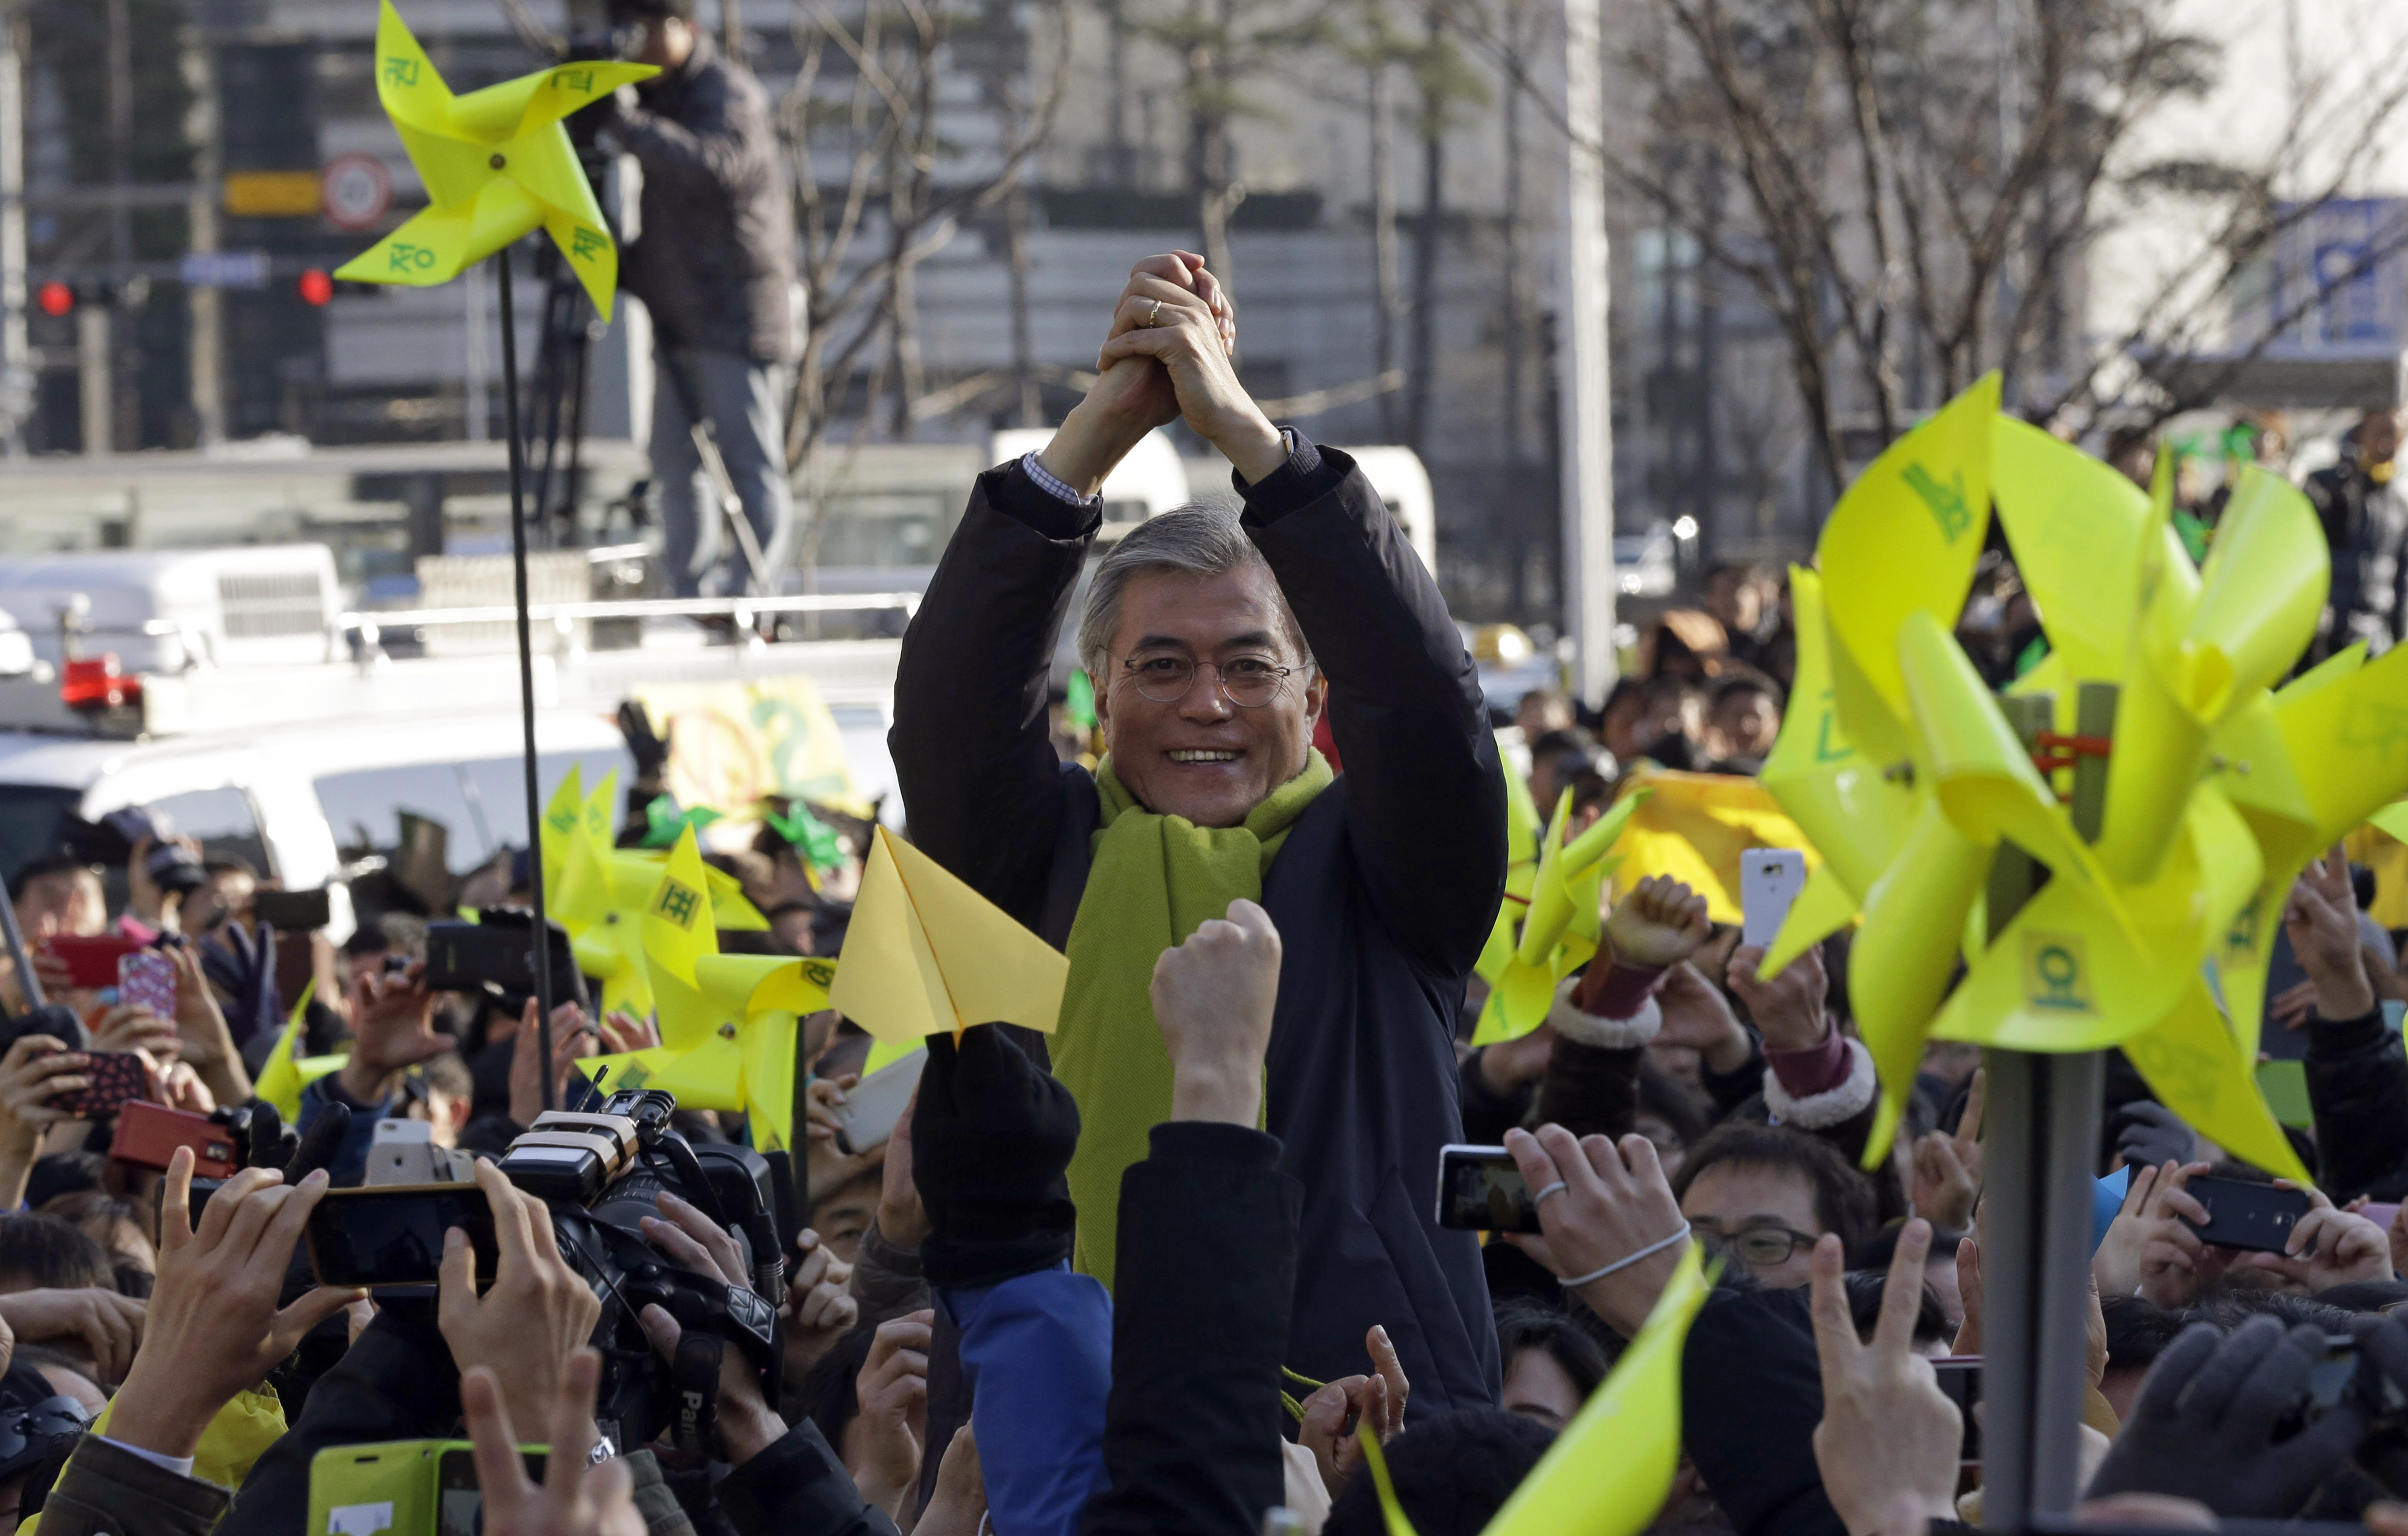 South Korea's presidential candidate of  Democratic United Party Moon Jae-in gestures to supporters while campaigning in Seoul, South Korea, Dec. 18, 2012.